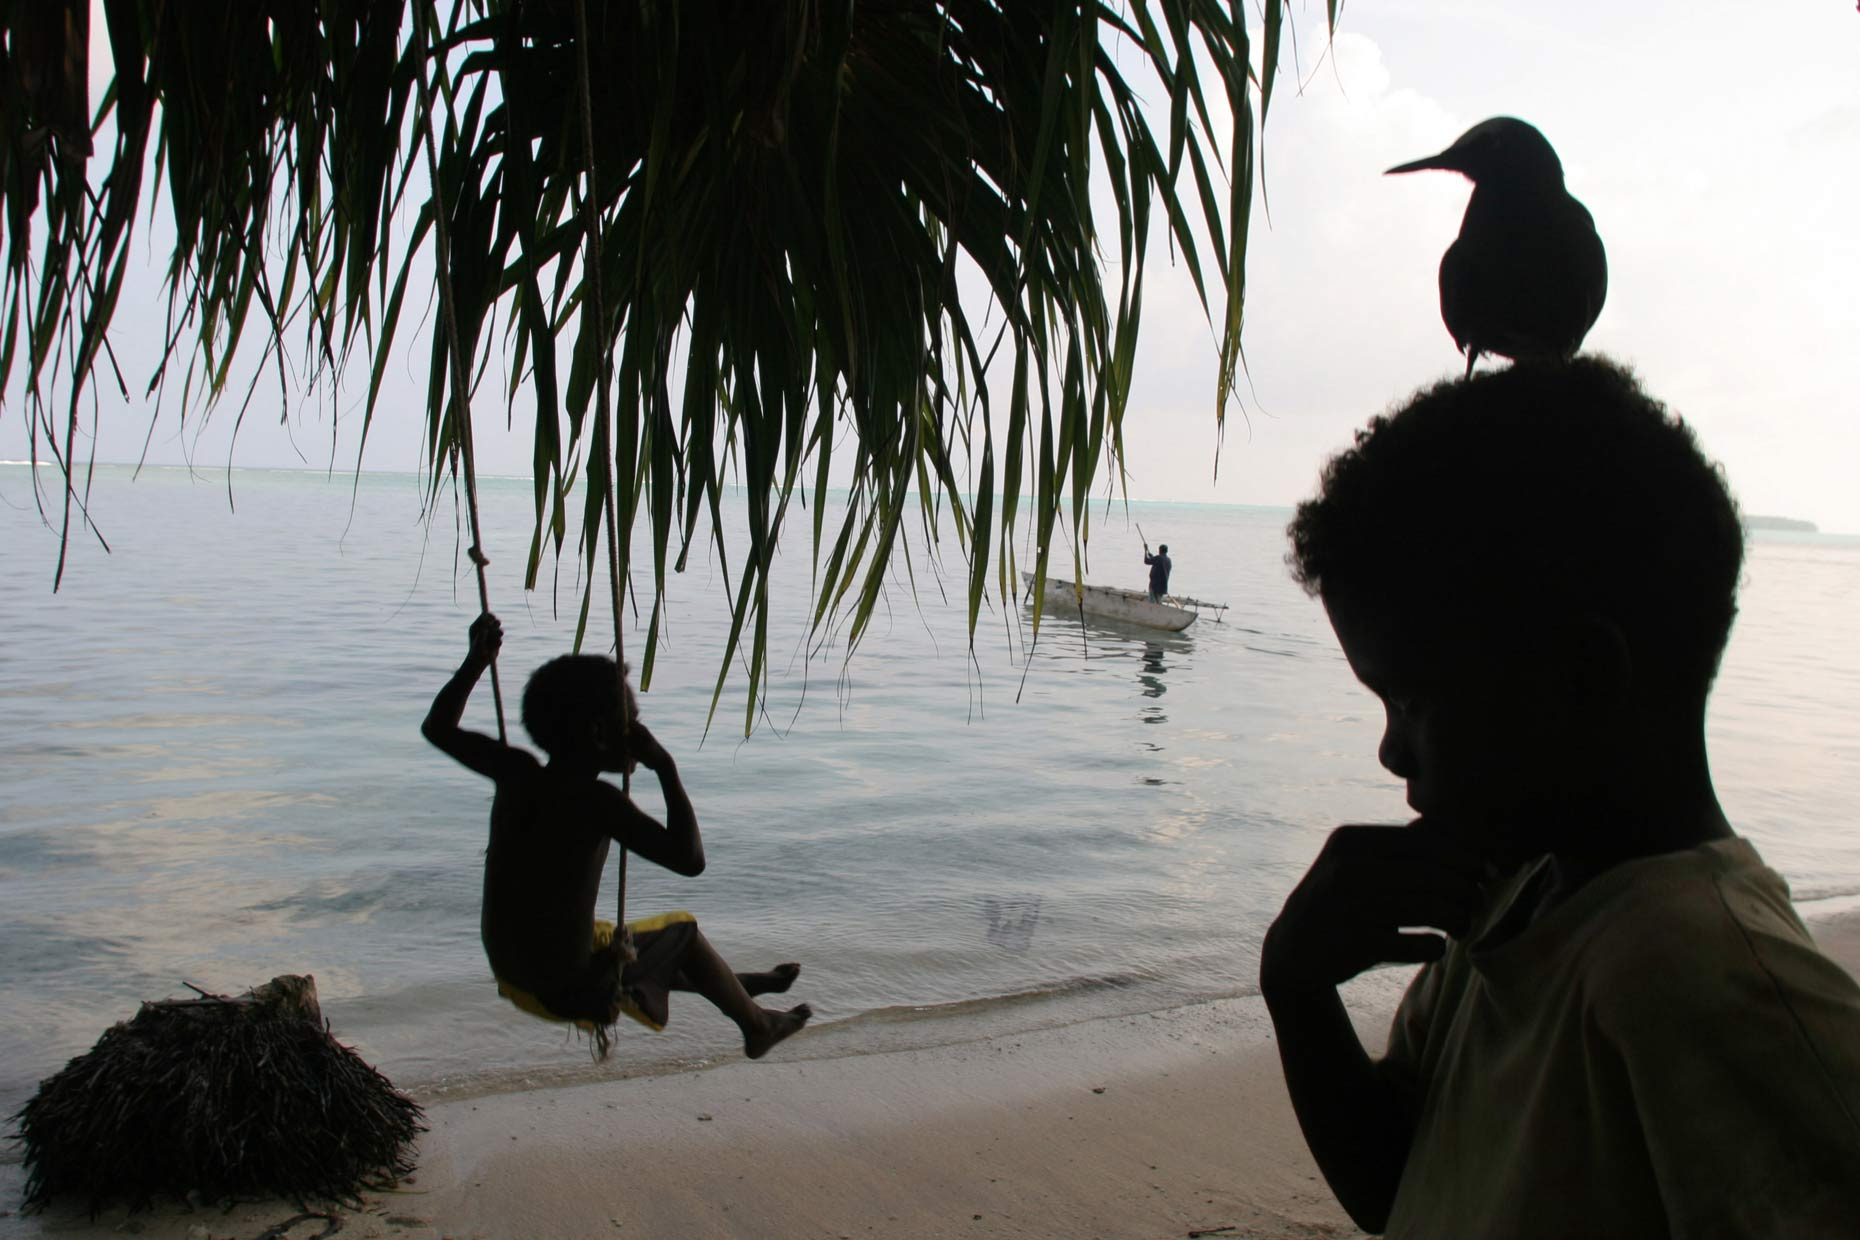 Children in Carterets Atoll, by Scotland Greenpeace photographer